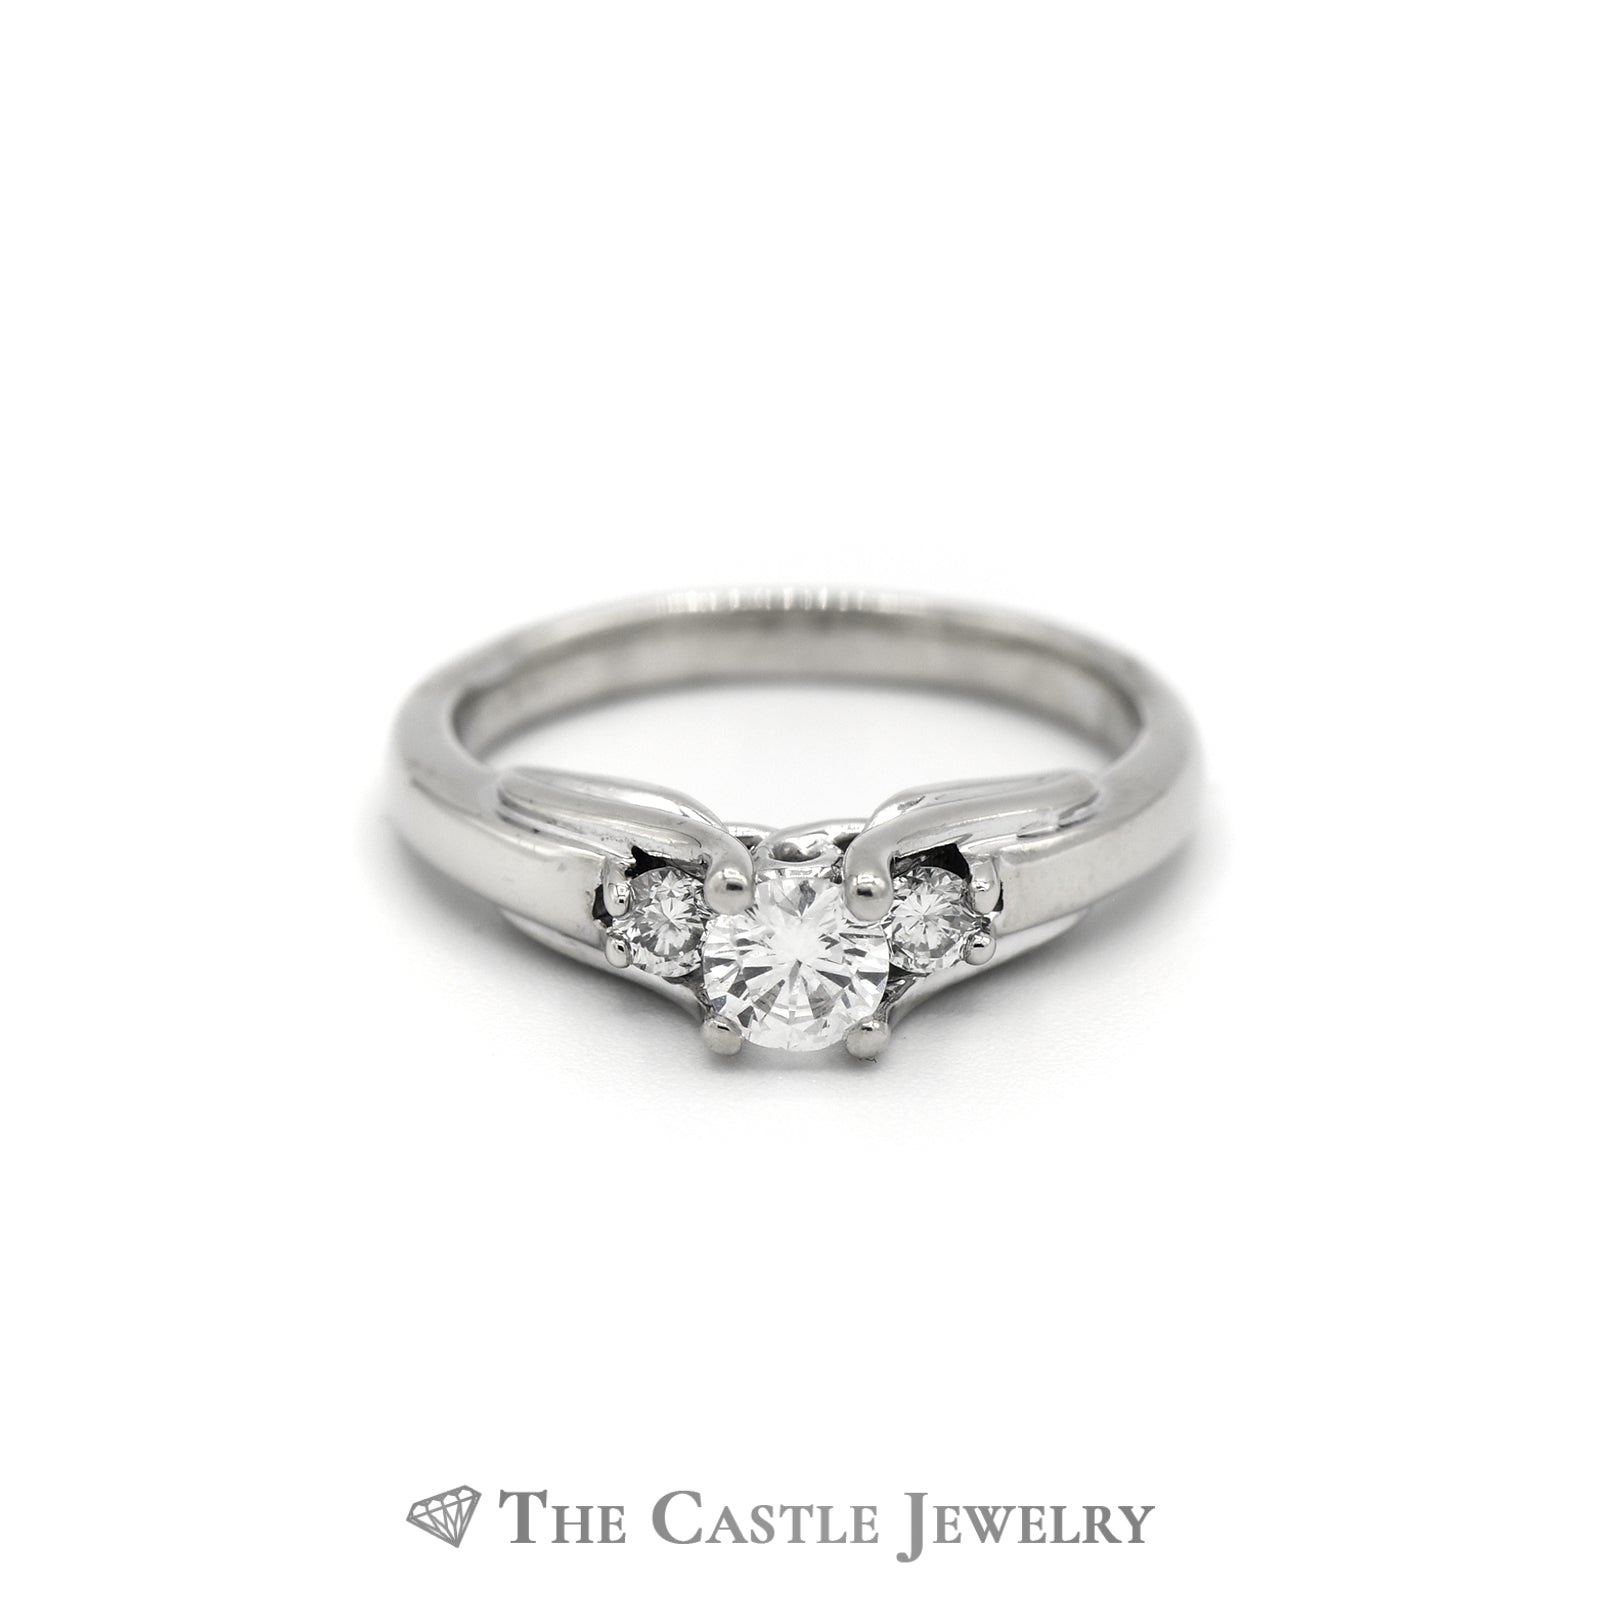 3 Stone Round Diamond Engagement Ring Fancy Cathedral Mounting in 14K White Gold